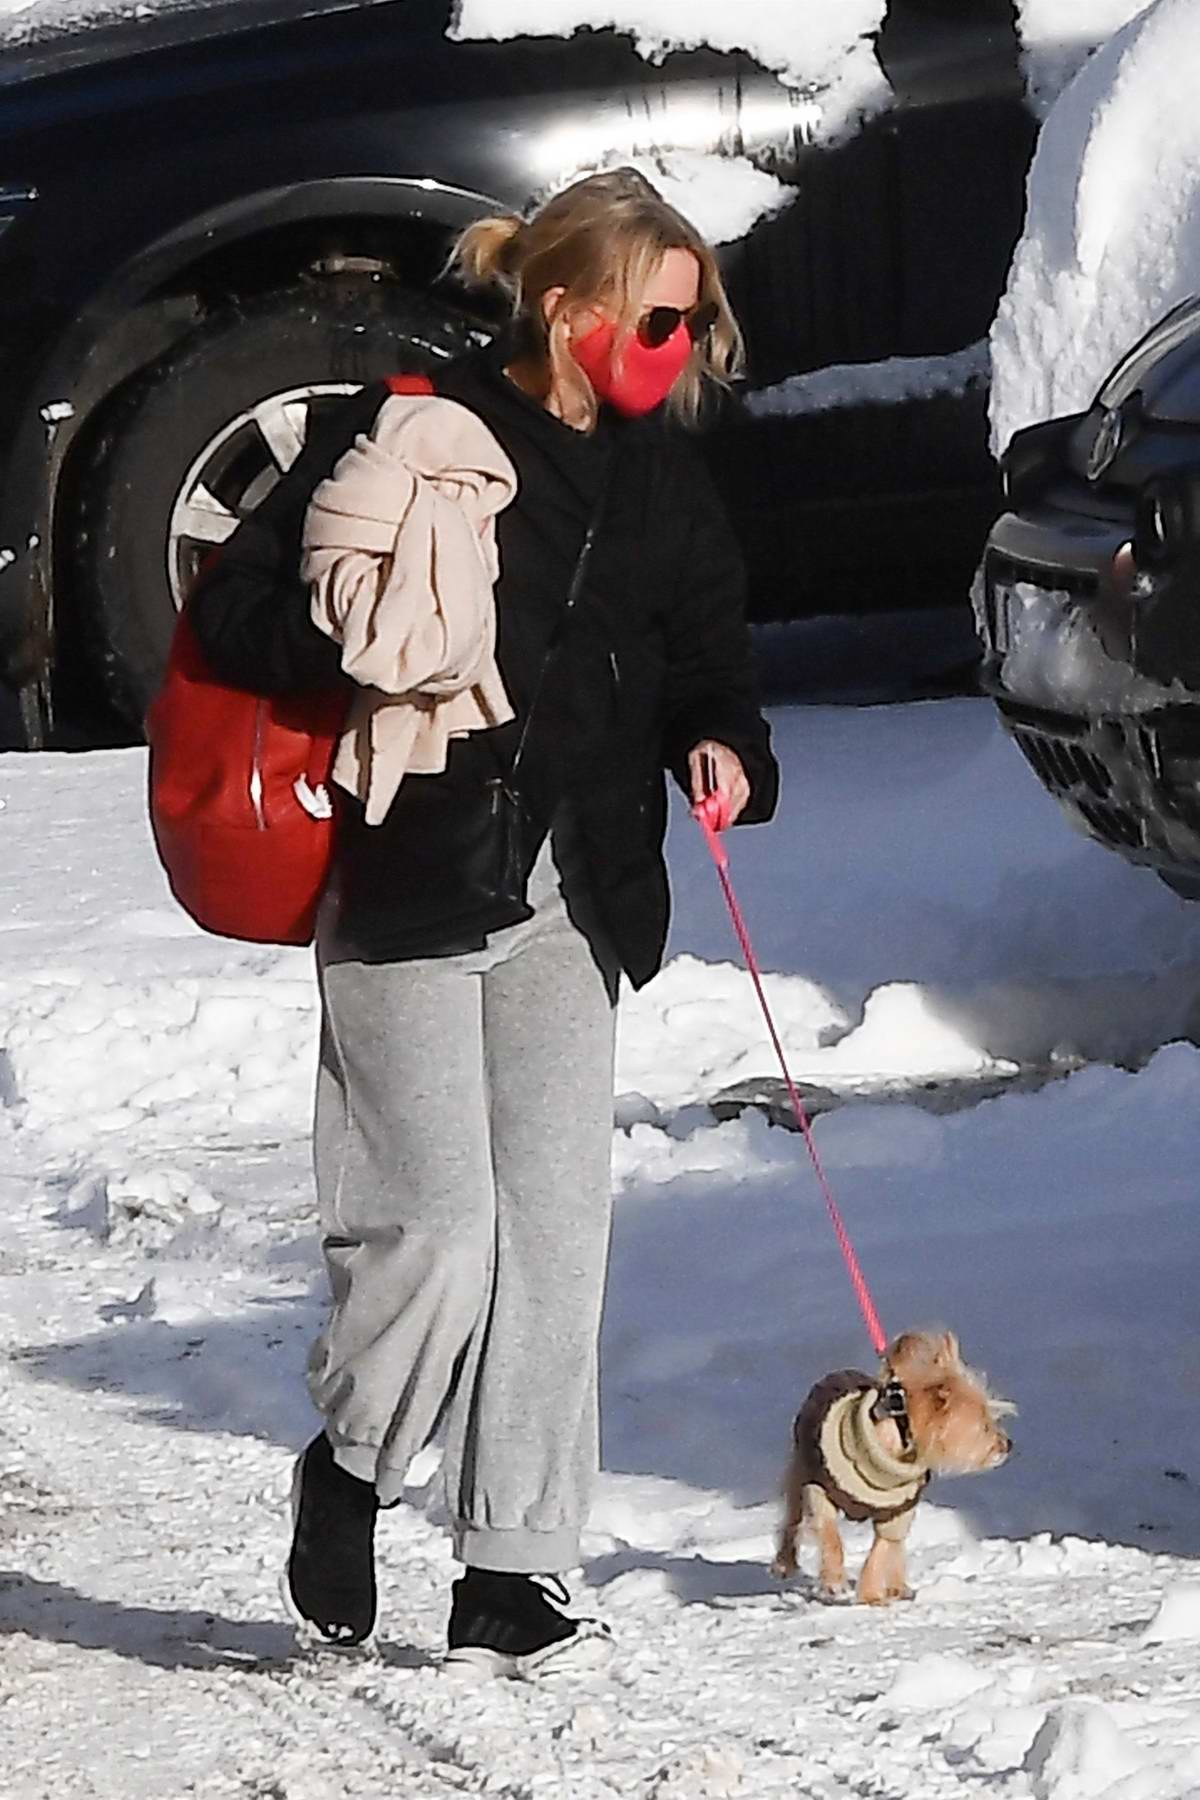 Naomi Watts and Liev Schreiber enjoy a break with their children at the ski resort of Cortina d'Ampezzo, Italy